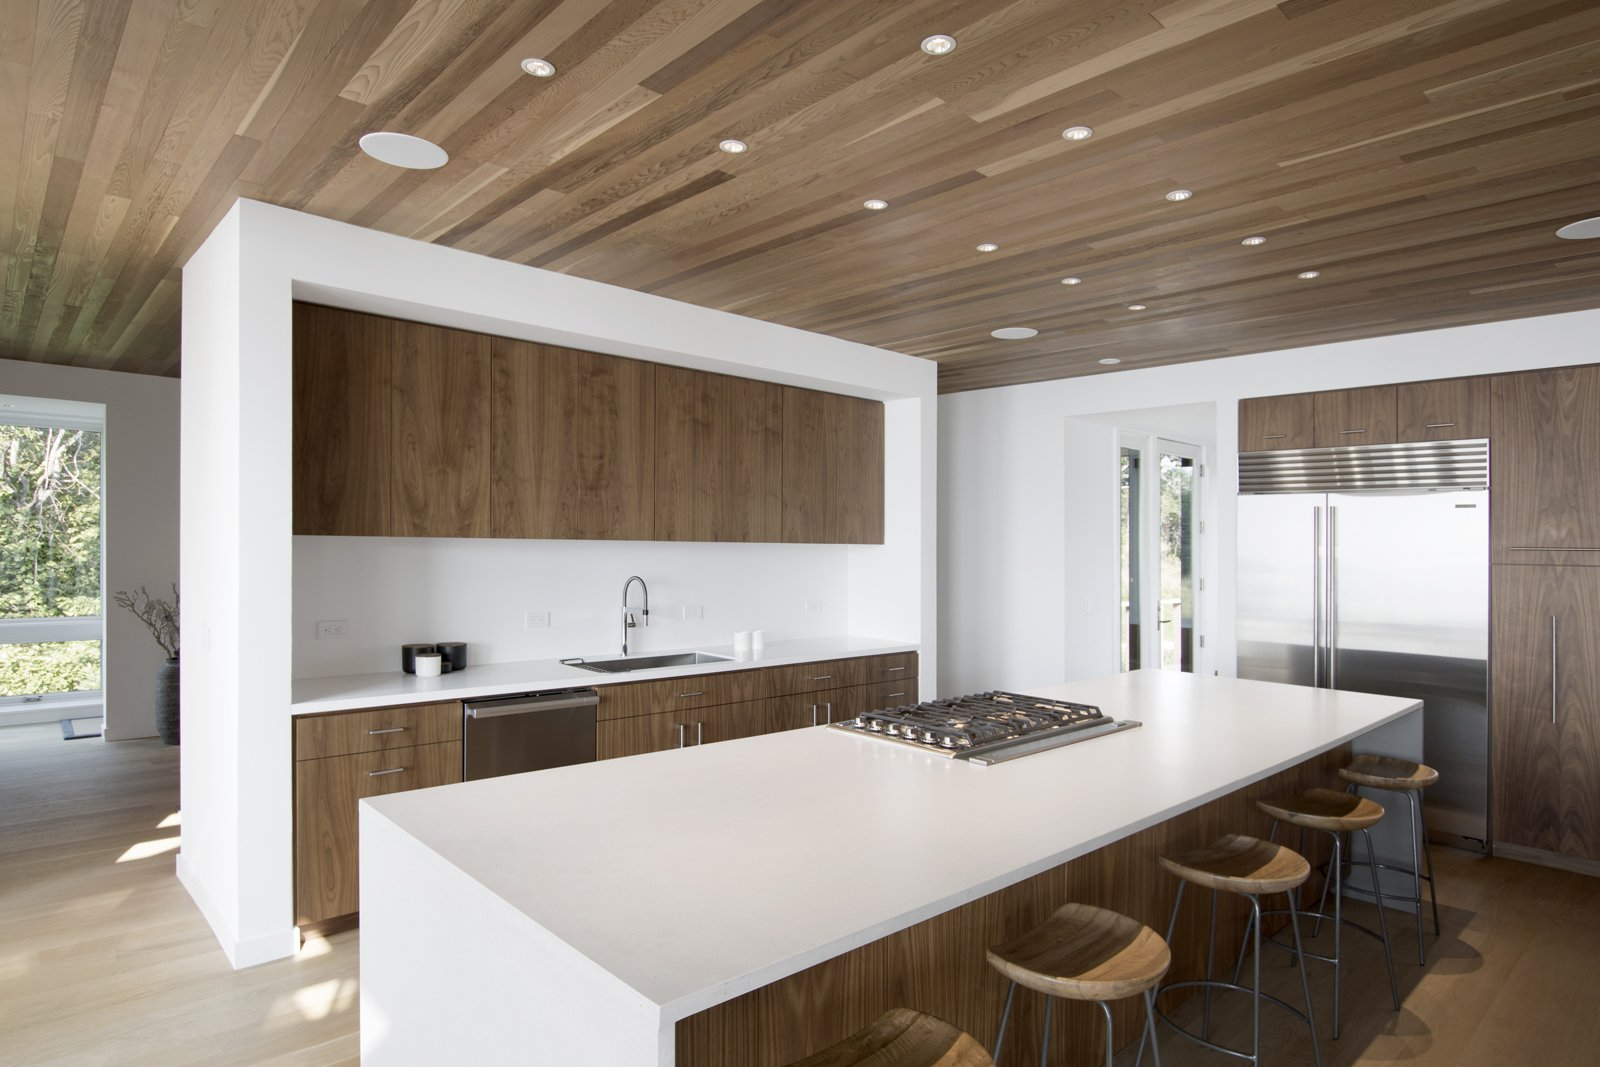 Kitchen, Ceiling Lighting, Refrigerator, Cooktops, Dishwasher, Engineered Quartz Counter, Light Hardwood Floor, Drop In Sink, and Wood Cabinet Kitchen  North Fork Bluff House by Resolution: 4 Architecture